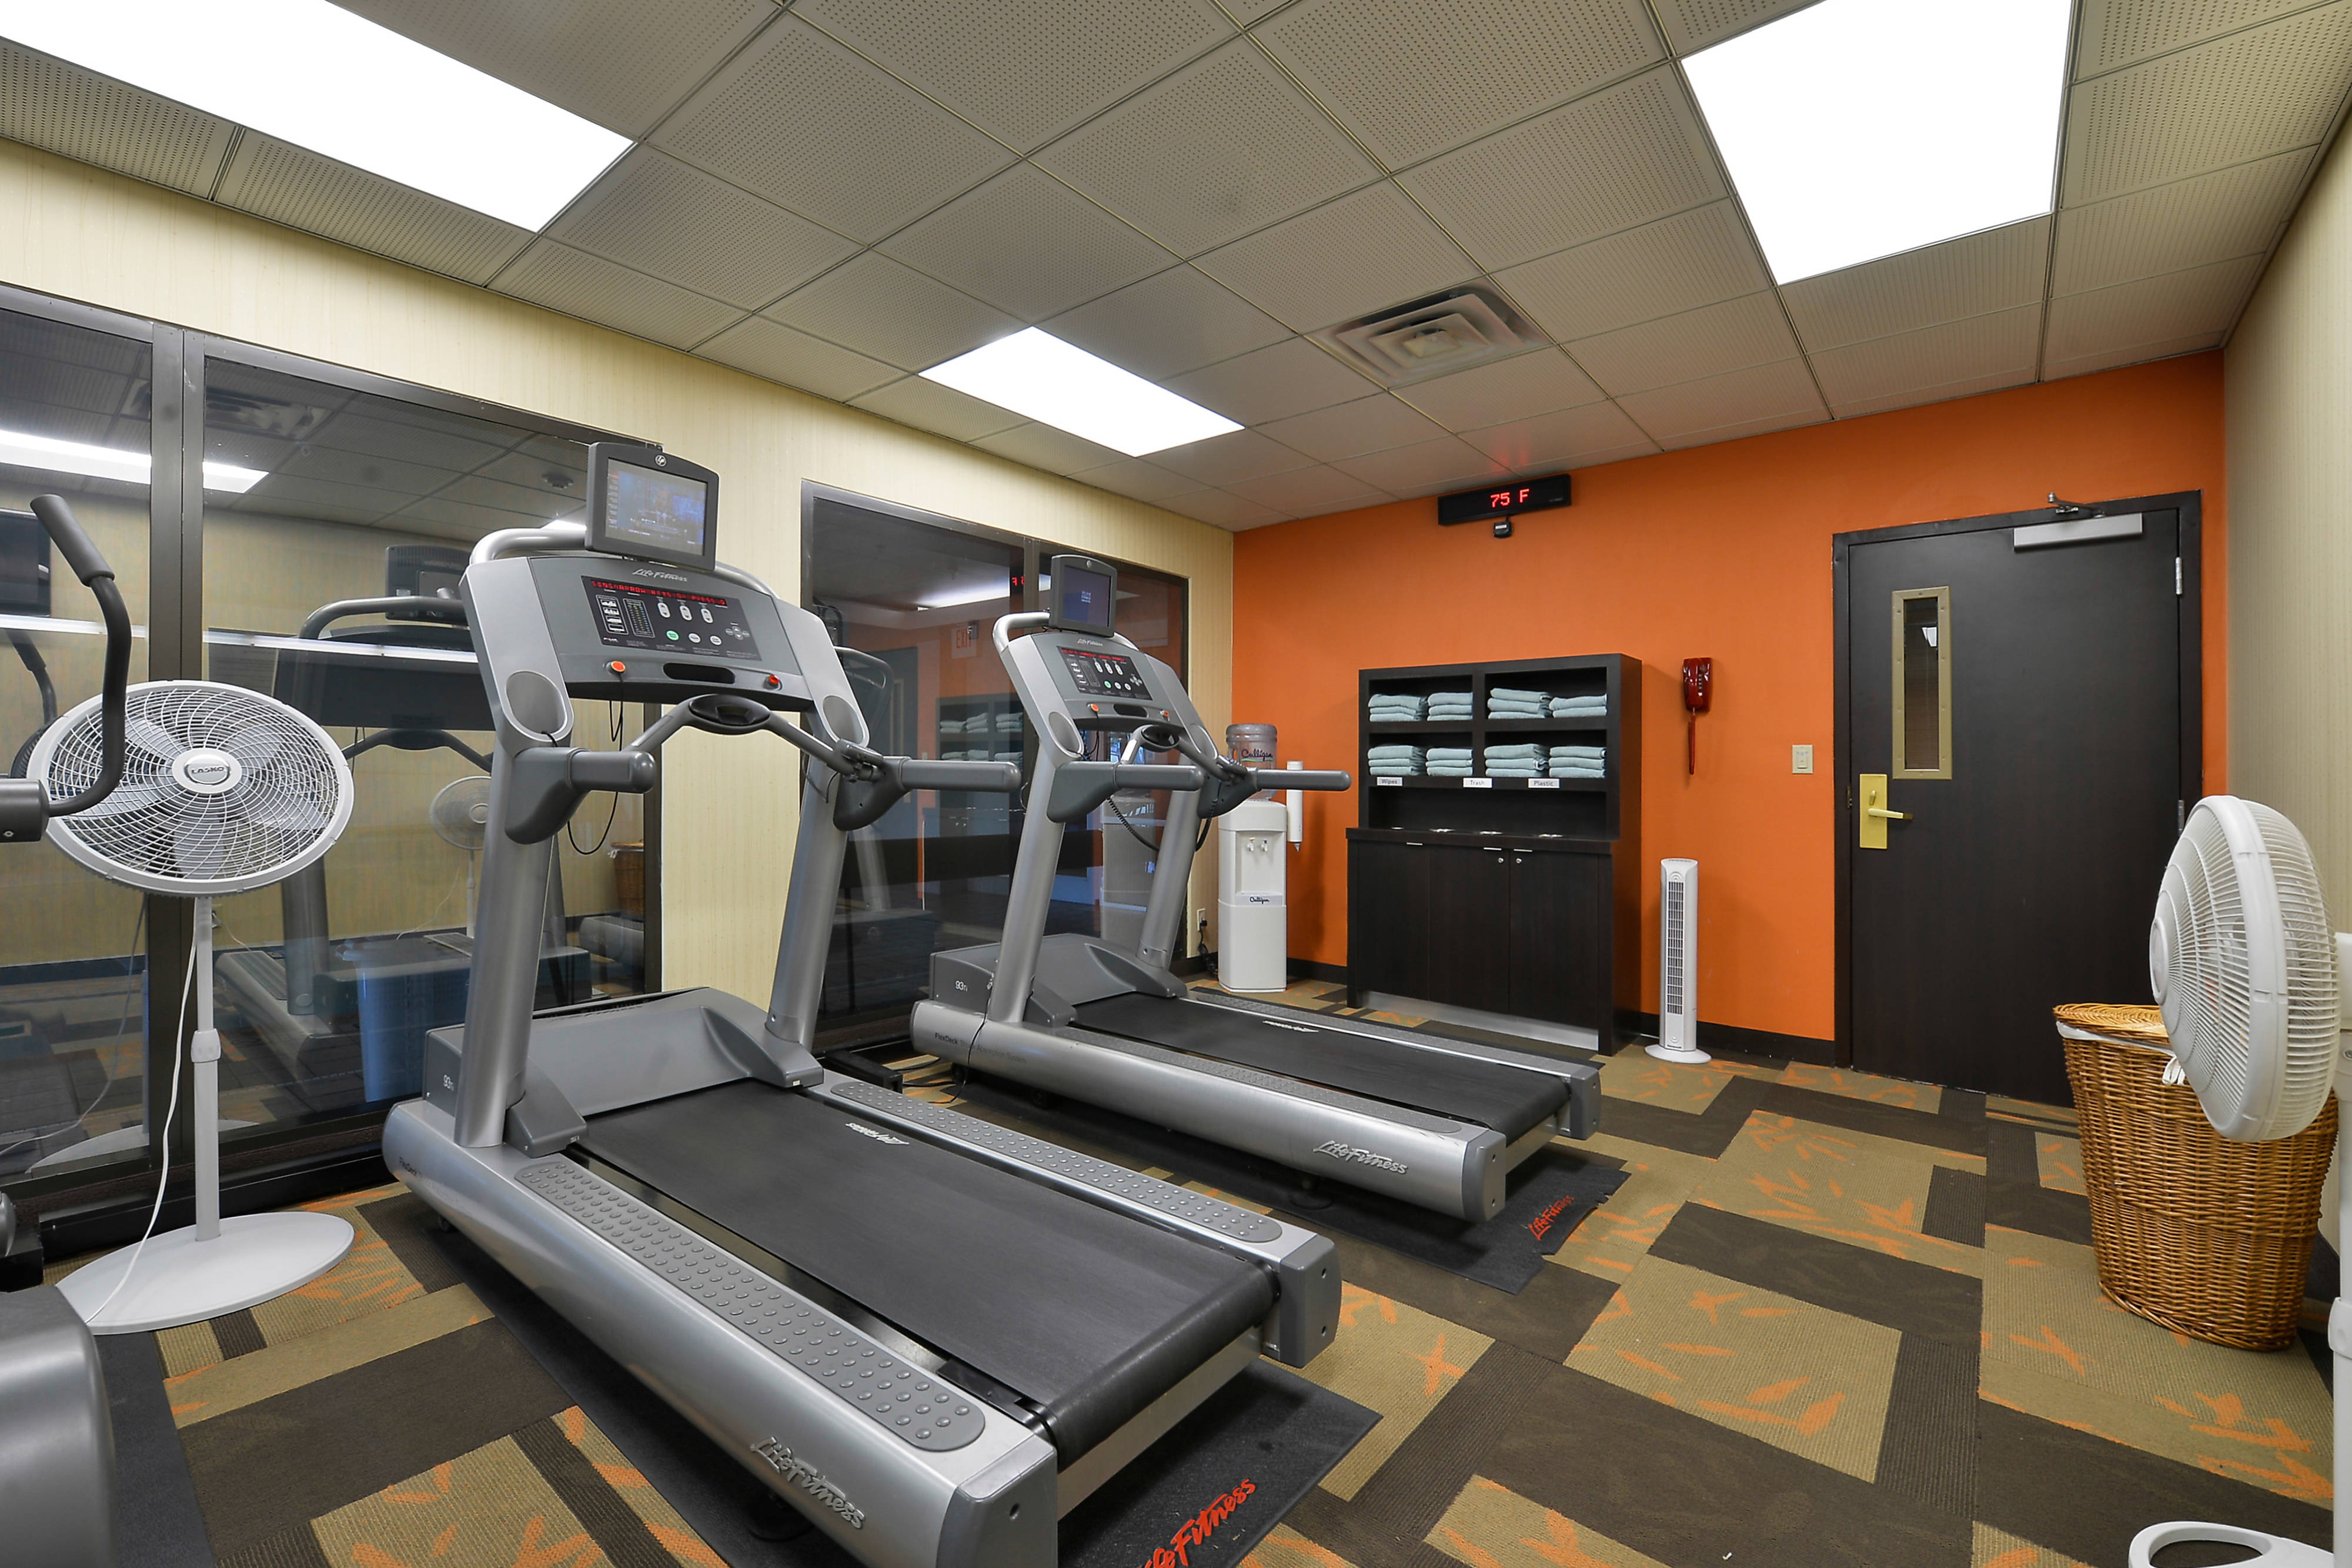 Hotel Fitness Center Bentonville Arkansas